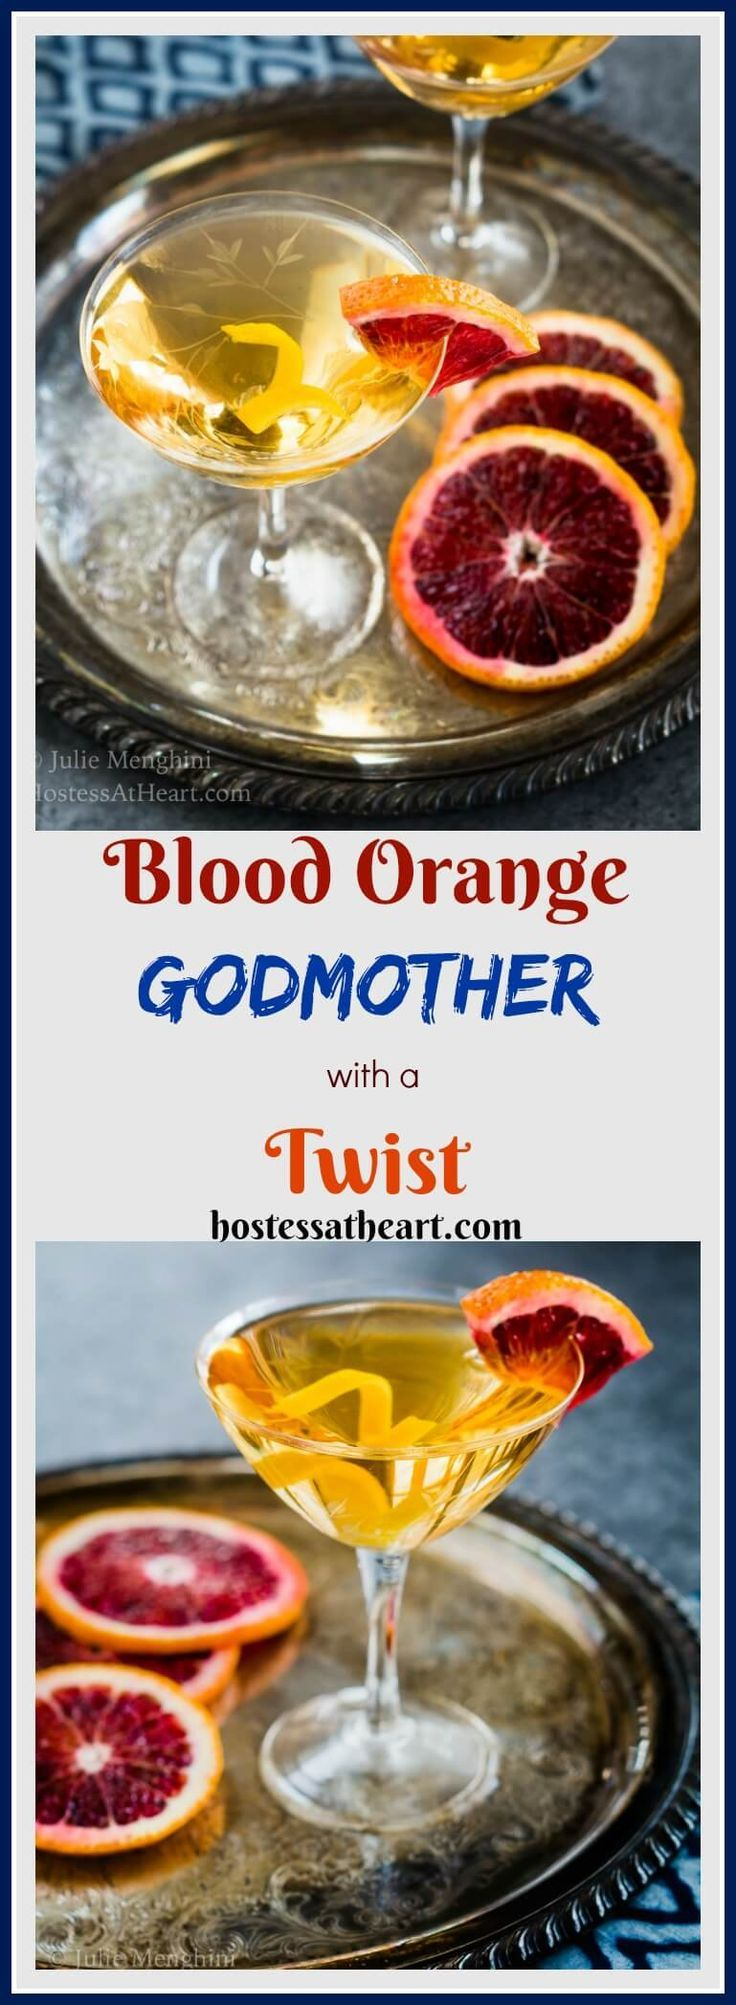 This Blood Orange Godmother cocktail adds a whole new twist to a traditional Godmother.This lady is a modern gal and is all dressed up and ready to please. #MixedDrinks #Cocktails #Vodka #drinks | Cocktails with Vodka | Vodka Mixed Drinks | Cocktail Recipes via @HostessAtHeart